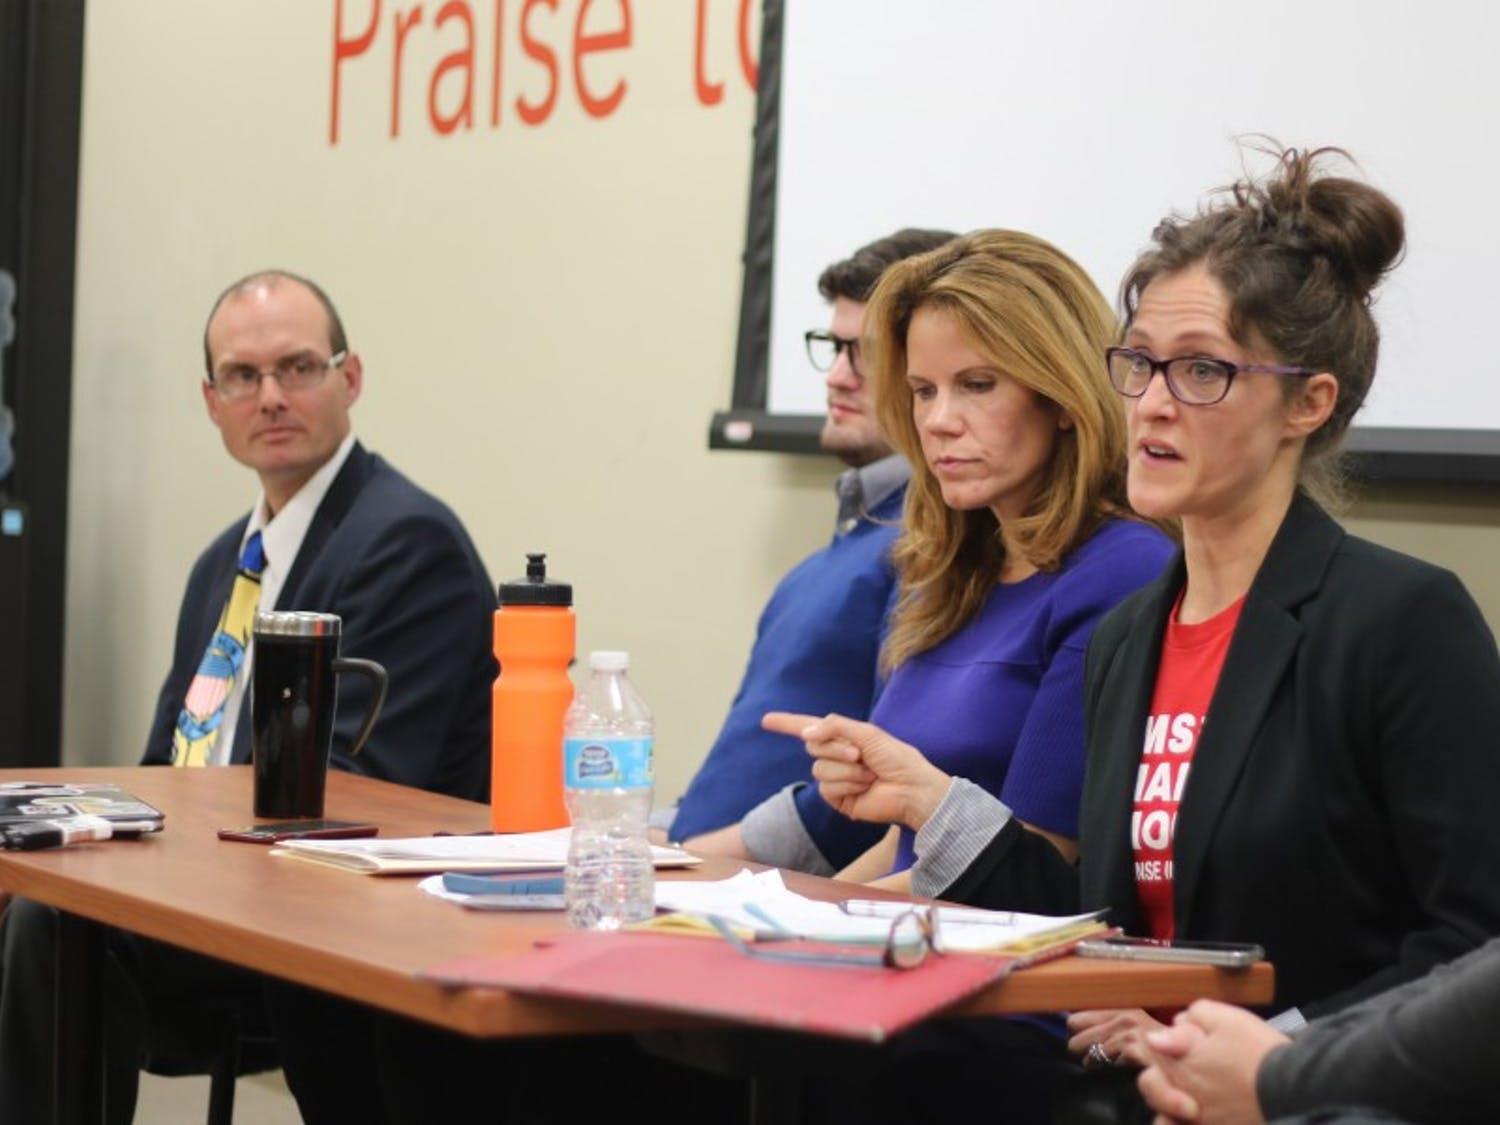 State Reps. Chris Taylor, D-Madison, and Jesse Kremer, R-Kewaskum, squared off Monday at Union South to debate potential campus carry effects.